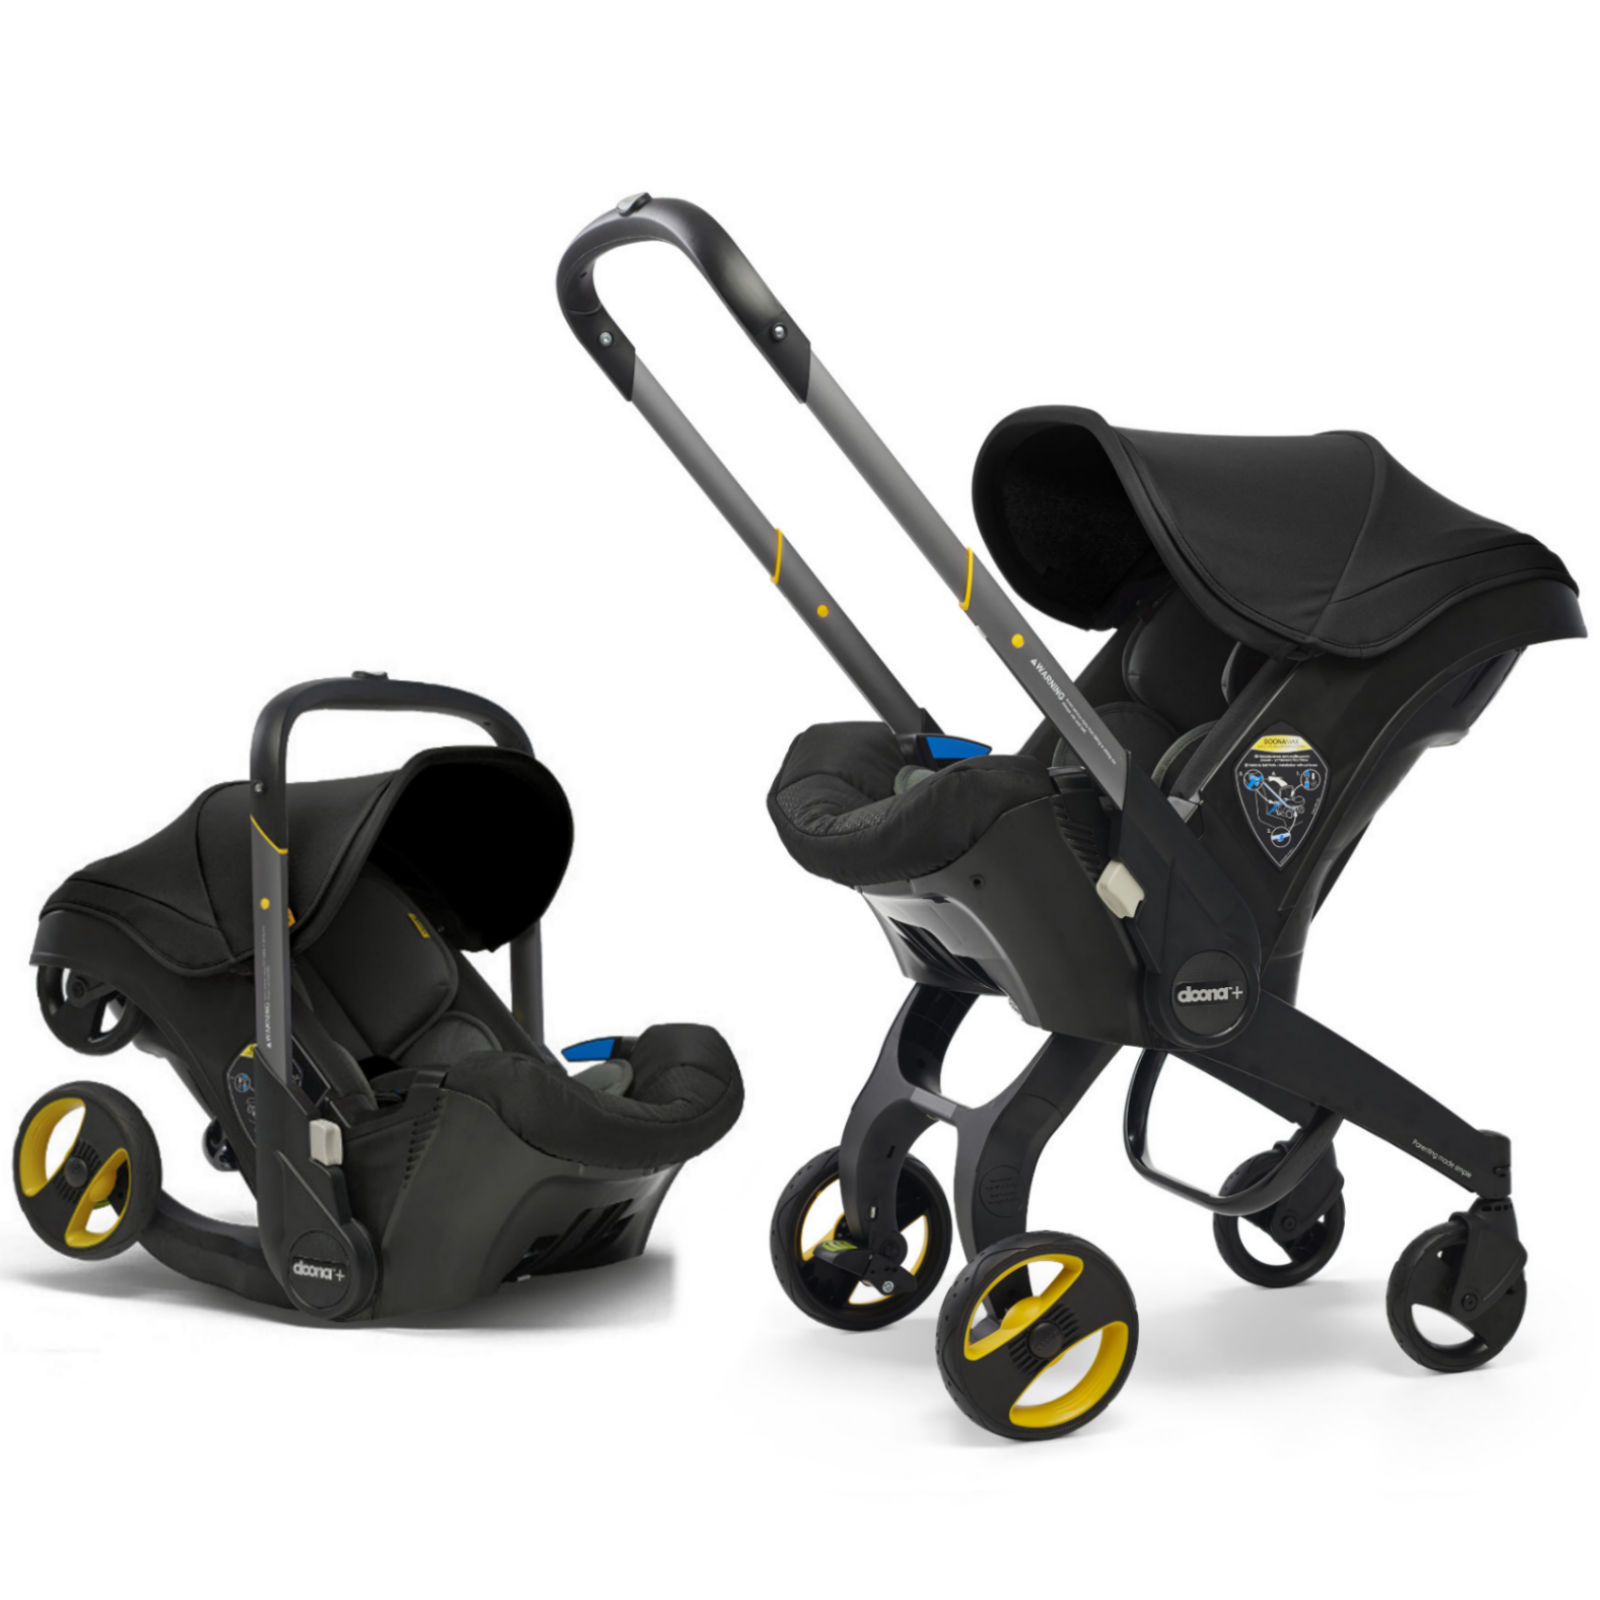 Doona Infant Car Seat / Stroller With ISOFIX Base & Free ...